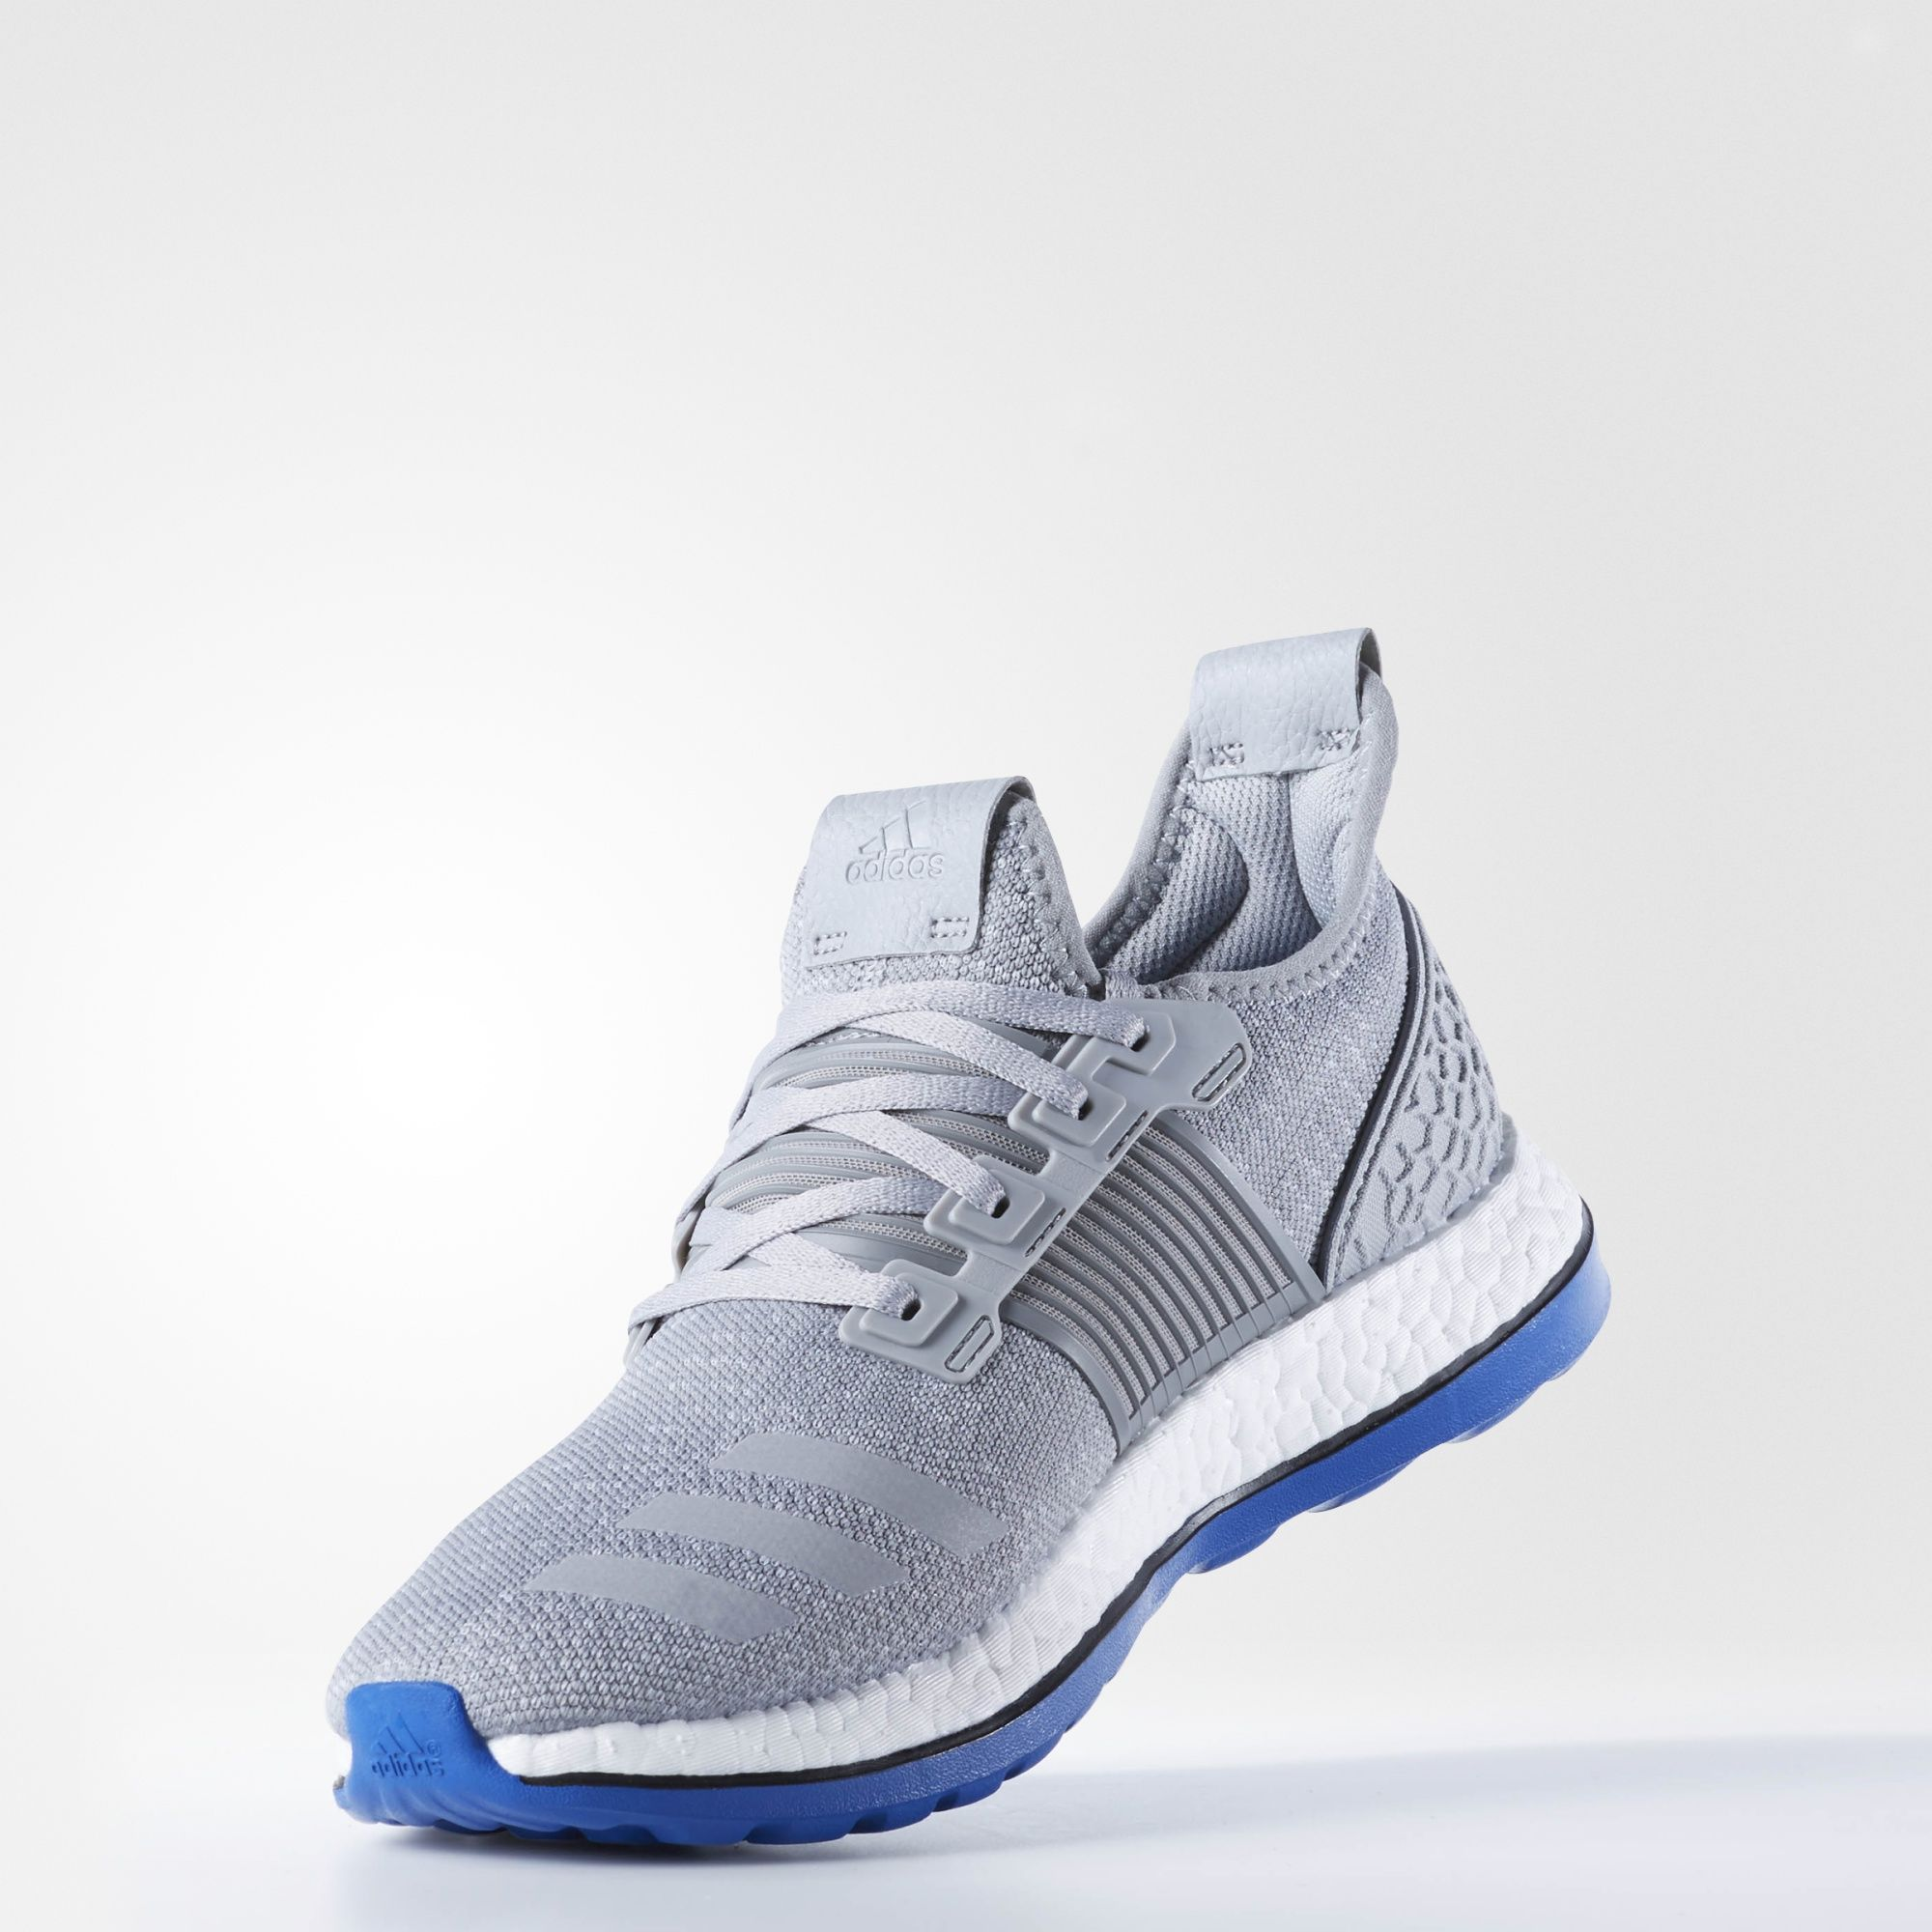 reputable site 70fdb 4078e adidas - Pure Boost ZG Prime - mid grey   blue    140€